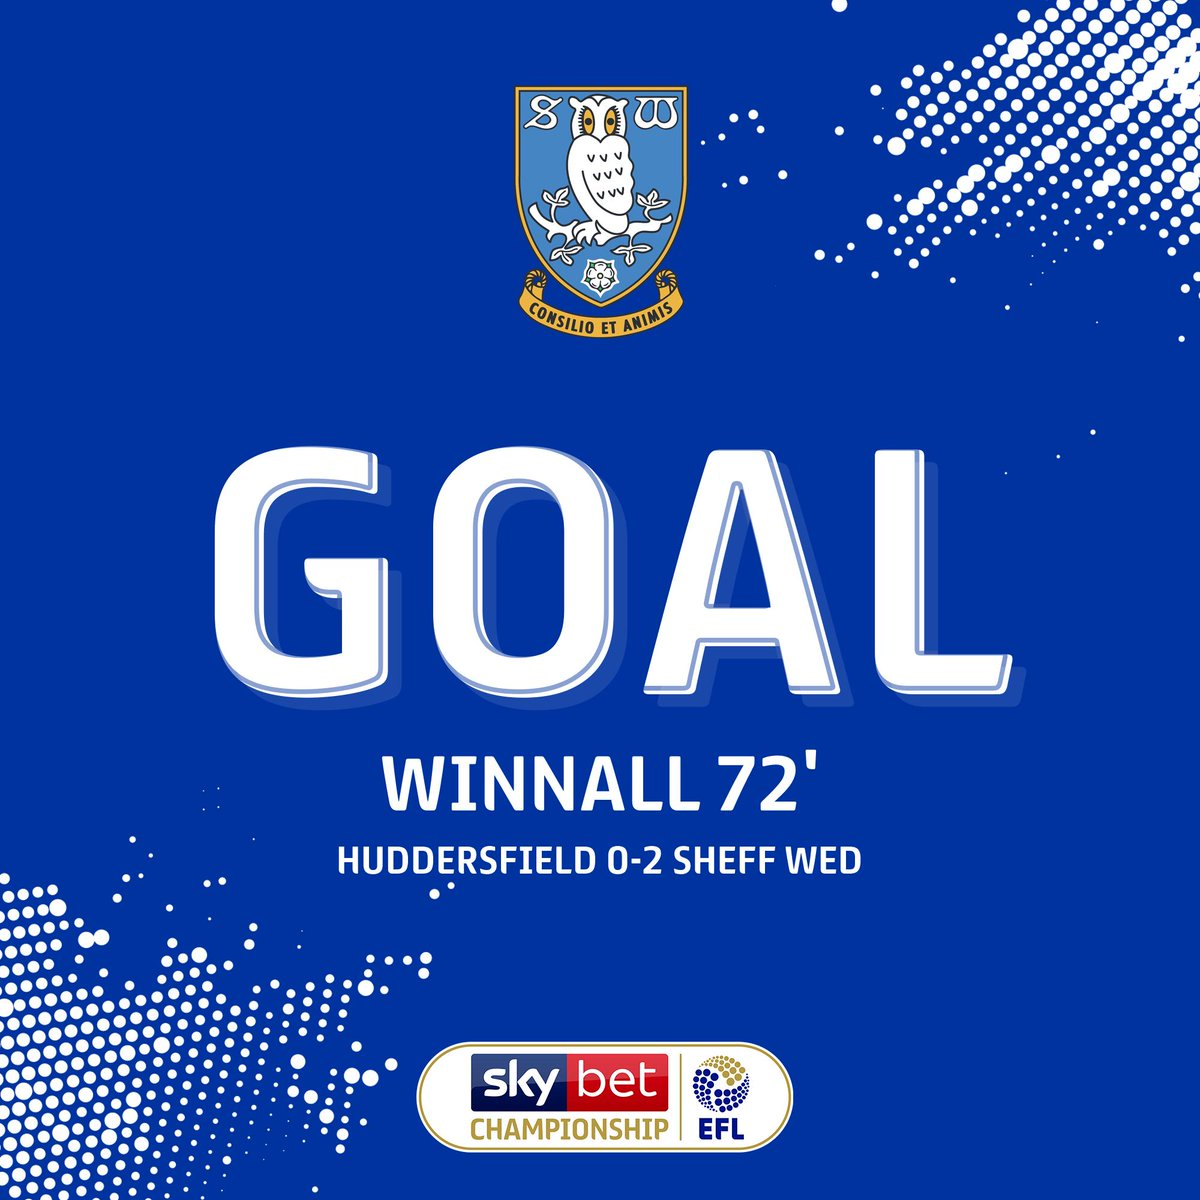 GOAL! Double delight for @swfc as Sam Winnall puts the visitors 2-0 up against @htafc... #EFL | #SkyBetChampionship